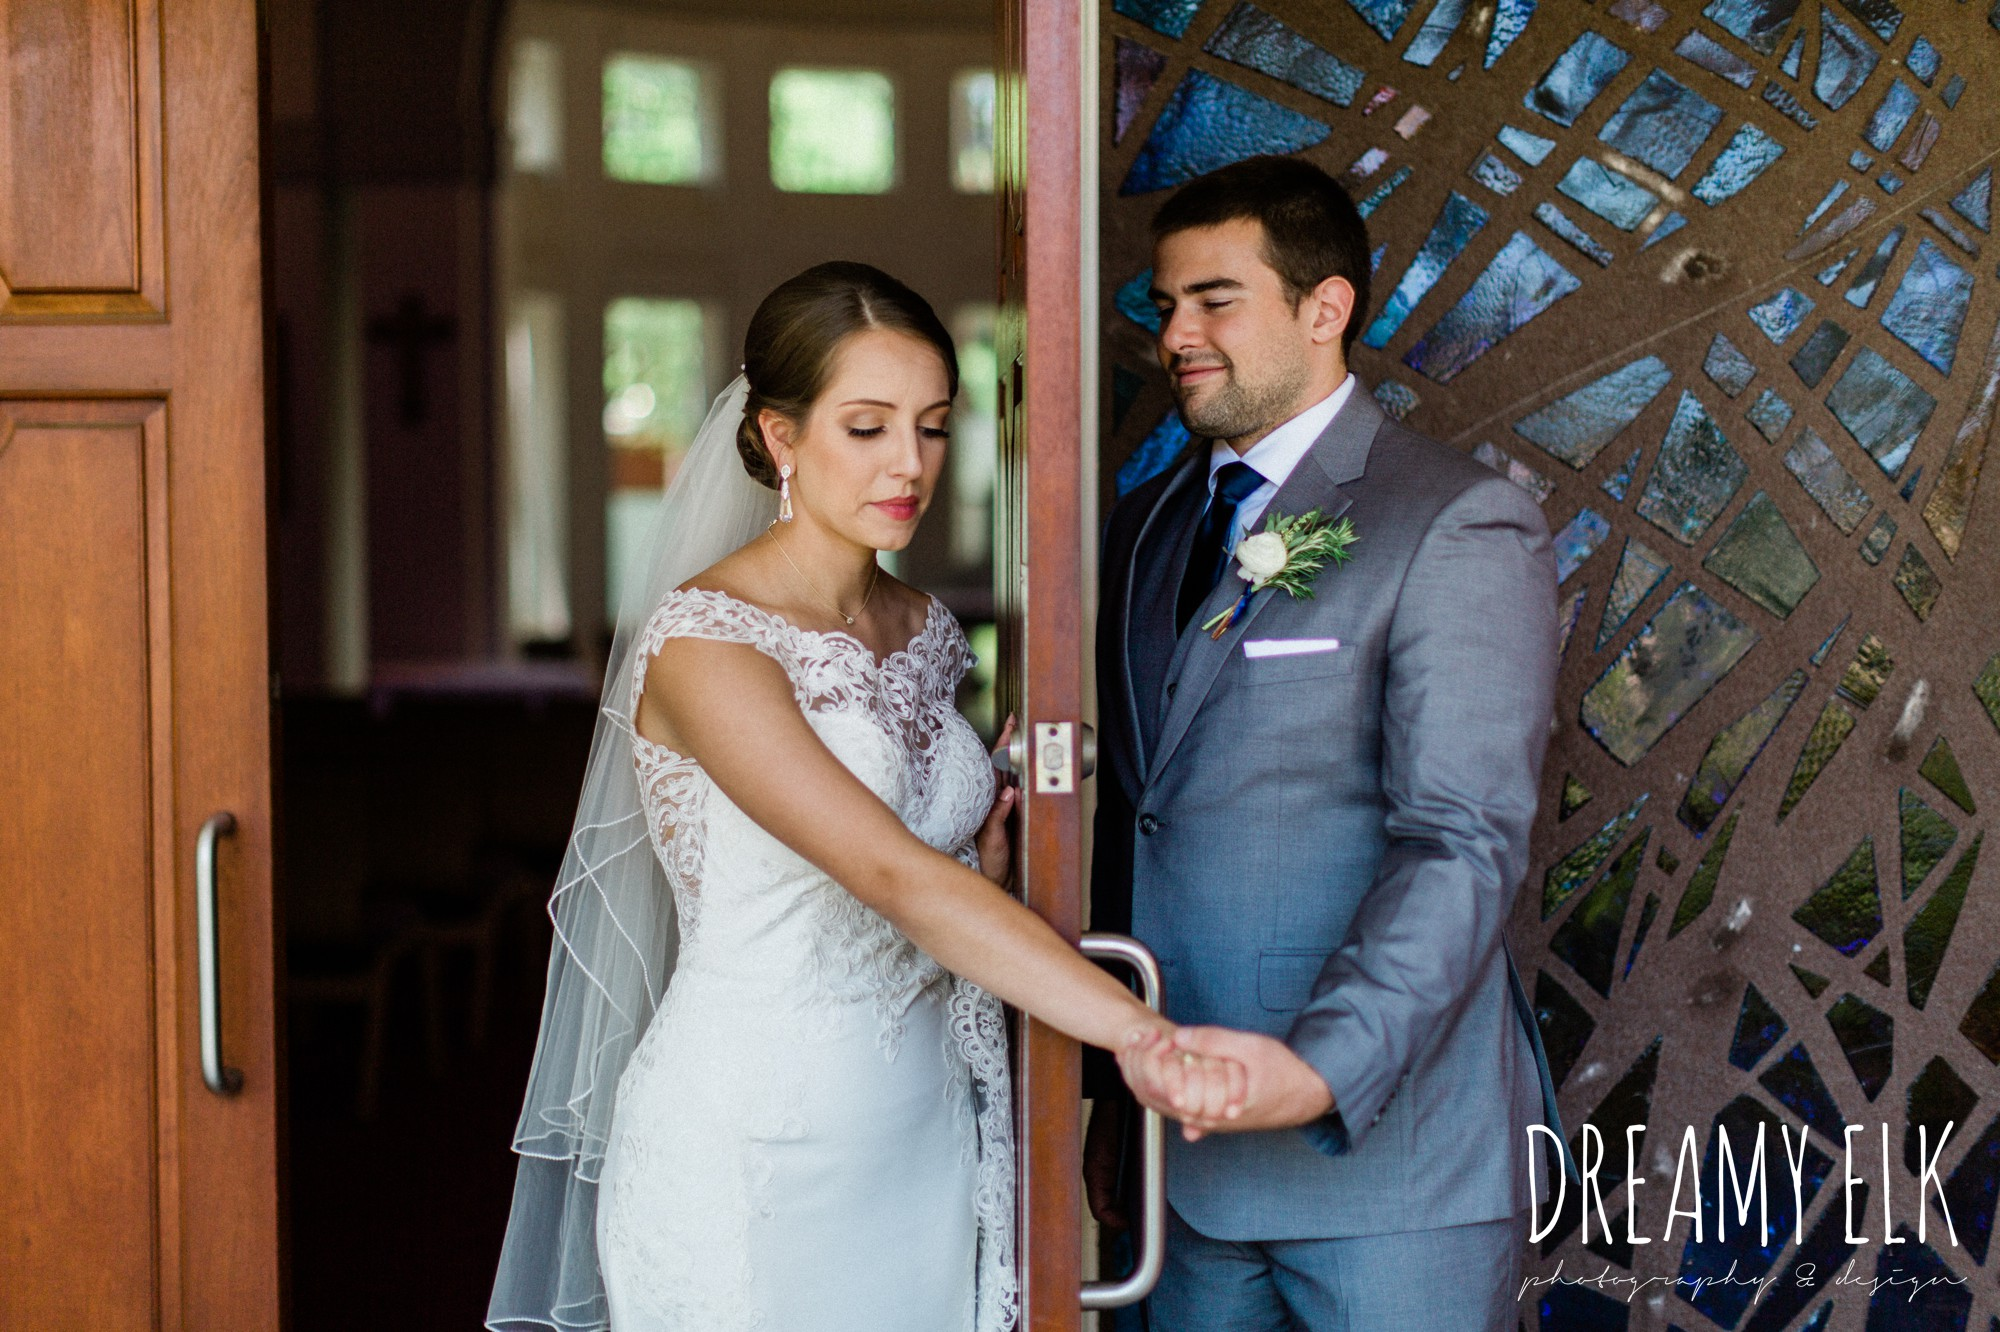 holding hands around a door, groom, bride, essense of australia column dress, unforgettable floral, spring wedding photo college station texas, dreamy elk photography and design